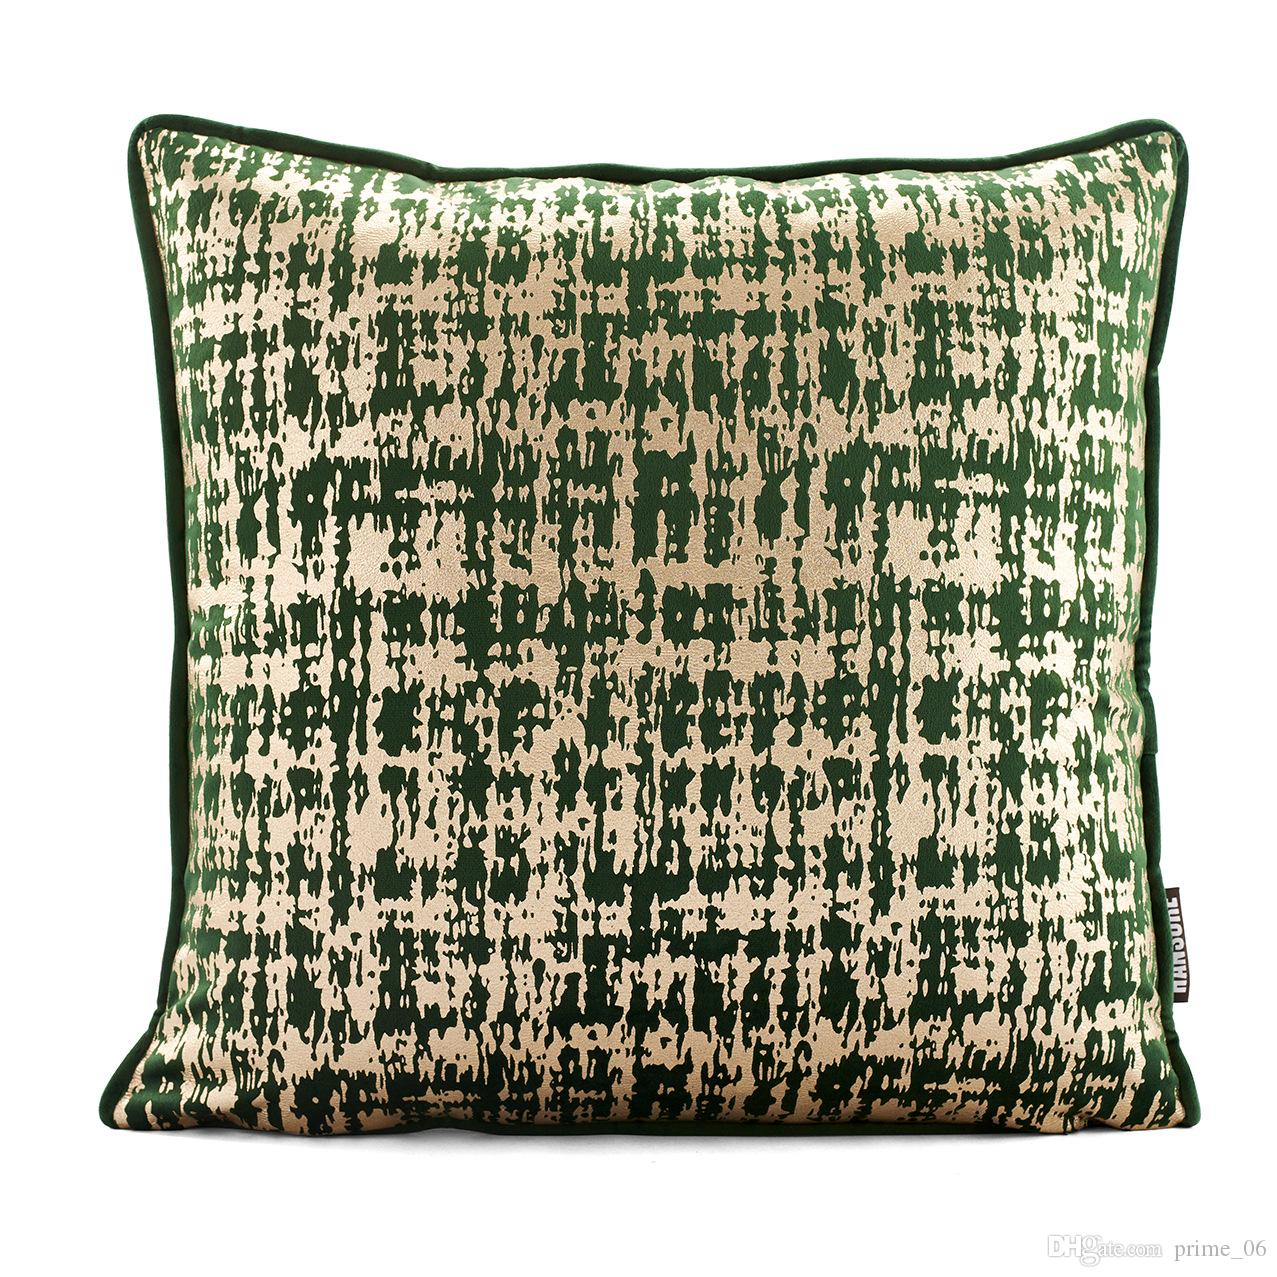 Supersoft Velvet Bronzing Pillowcase Cover Cushion Cover Home Decor Gold Stamp Pillow Decorative Throw Pillows Pillow Case For Home Sofa Pillowcases